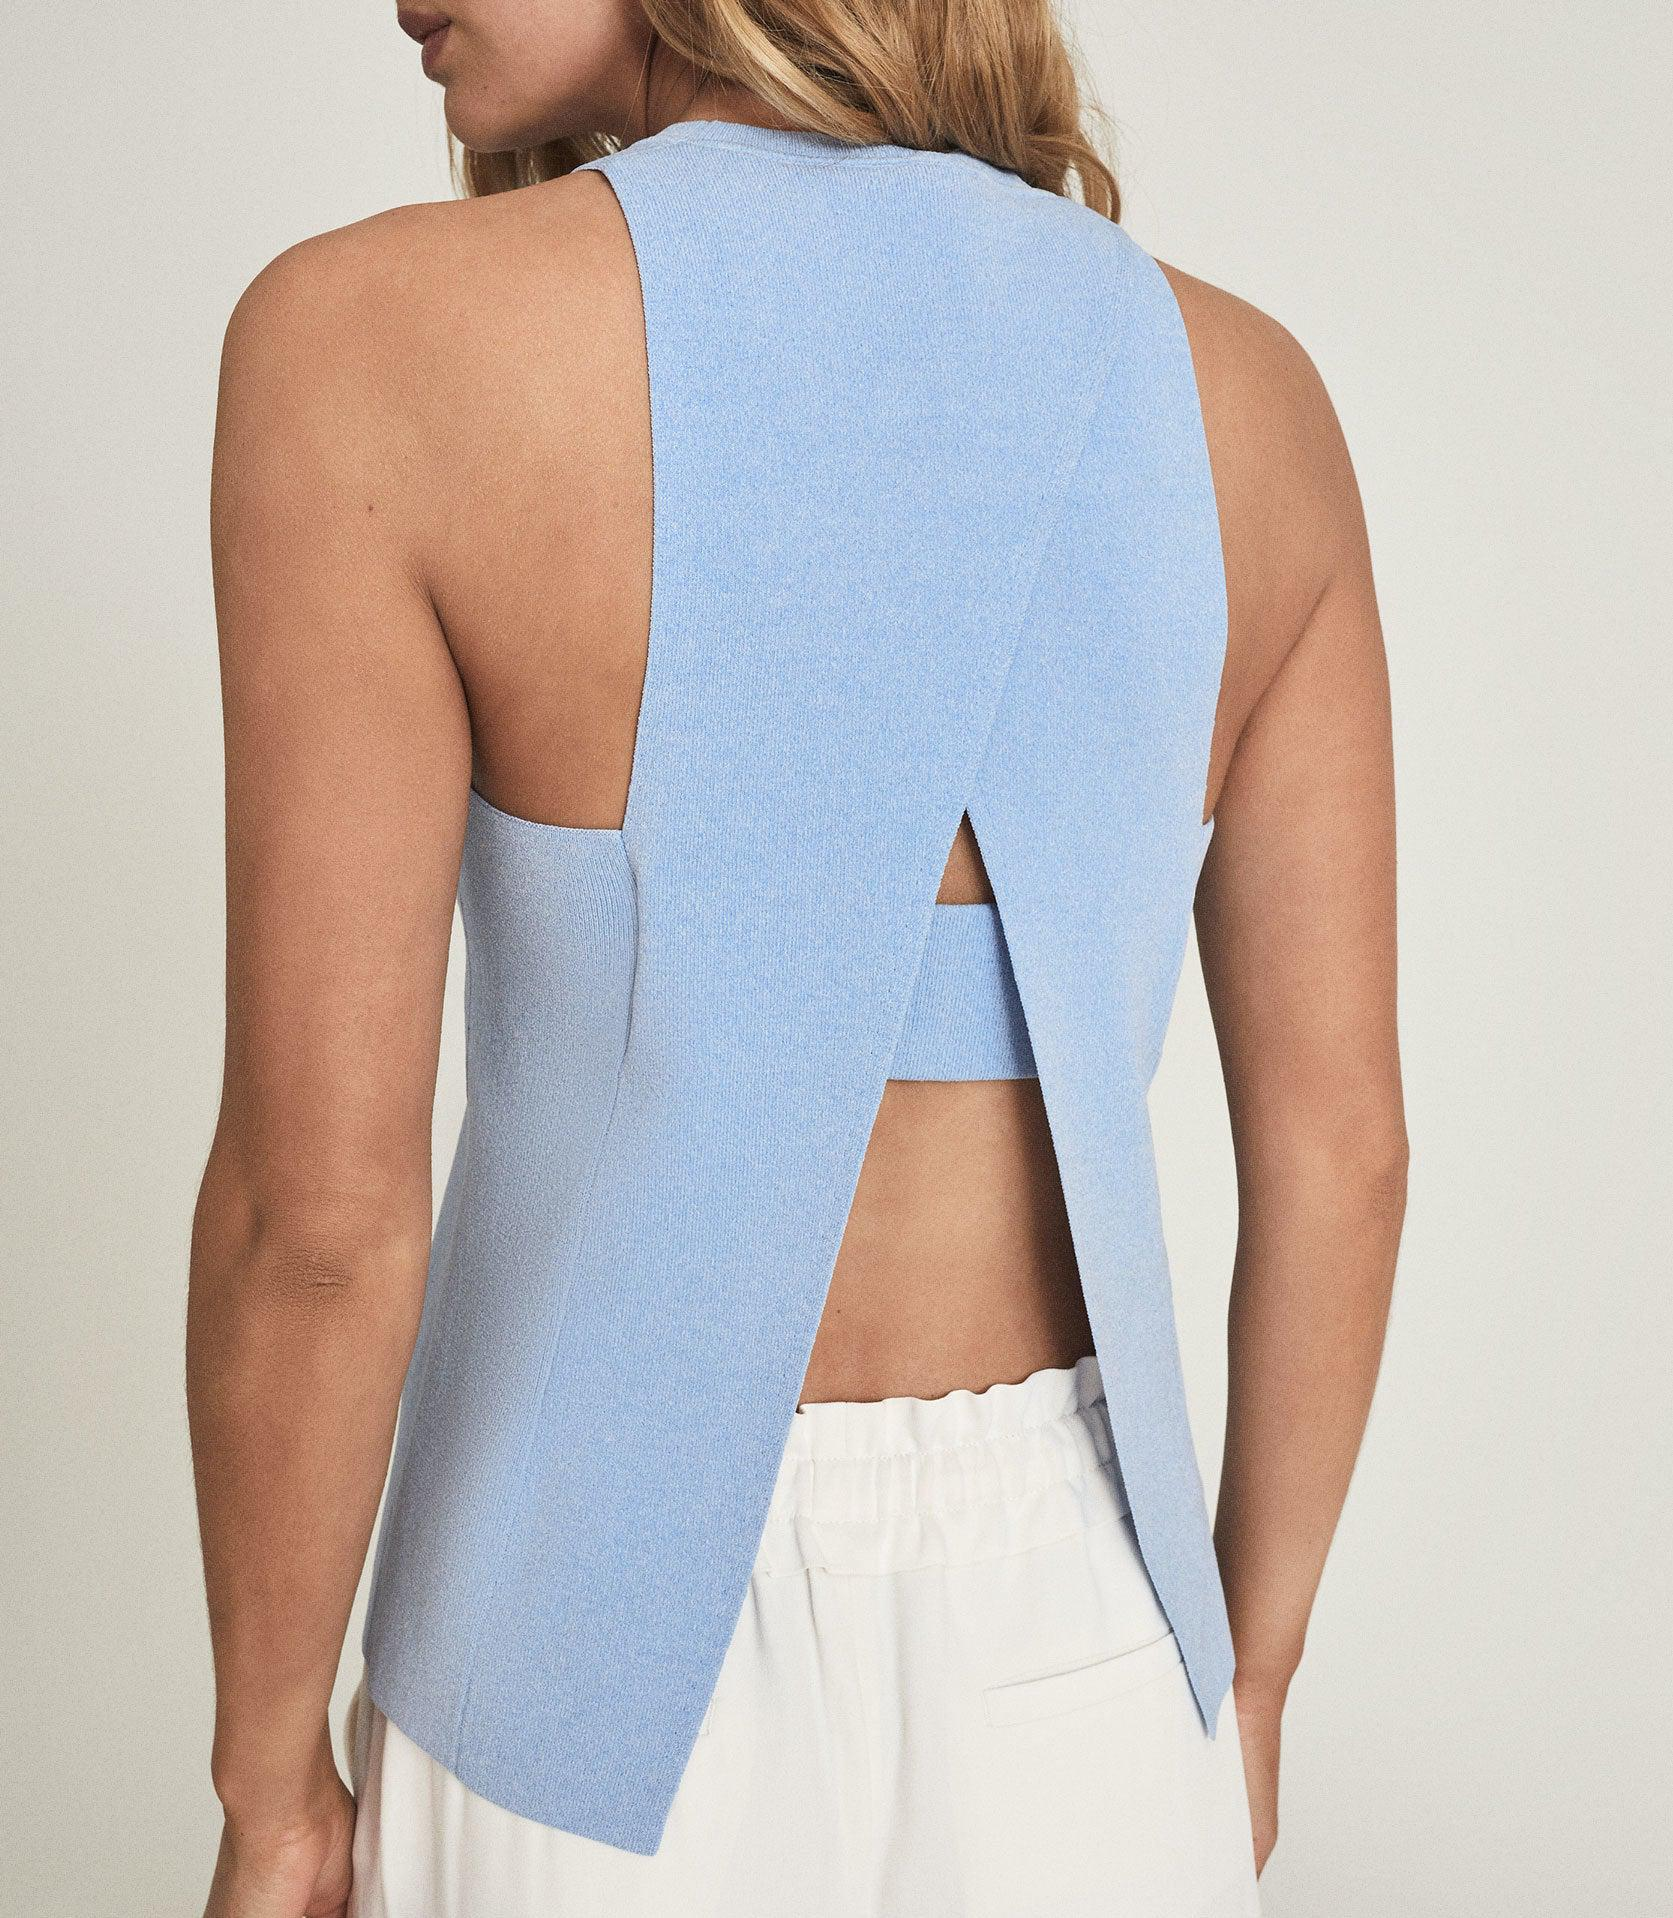 HEIDI - KNITTED OPEN BACK TOP 3